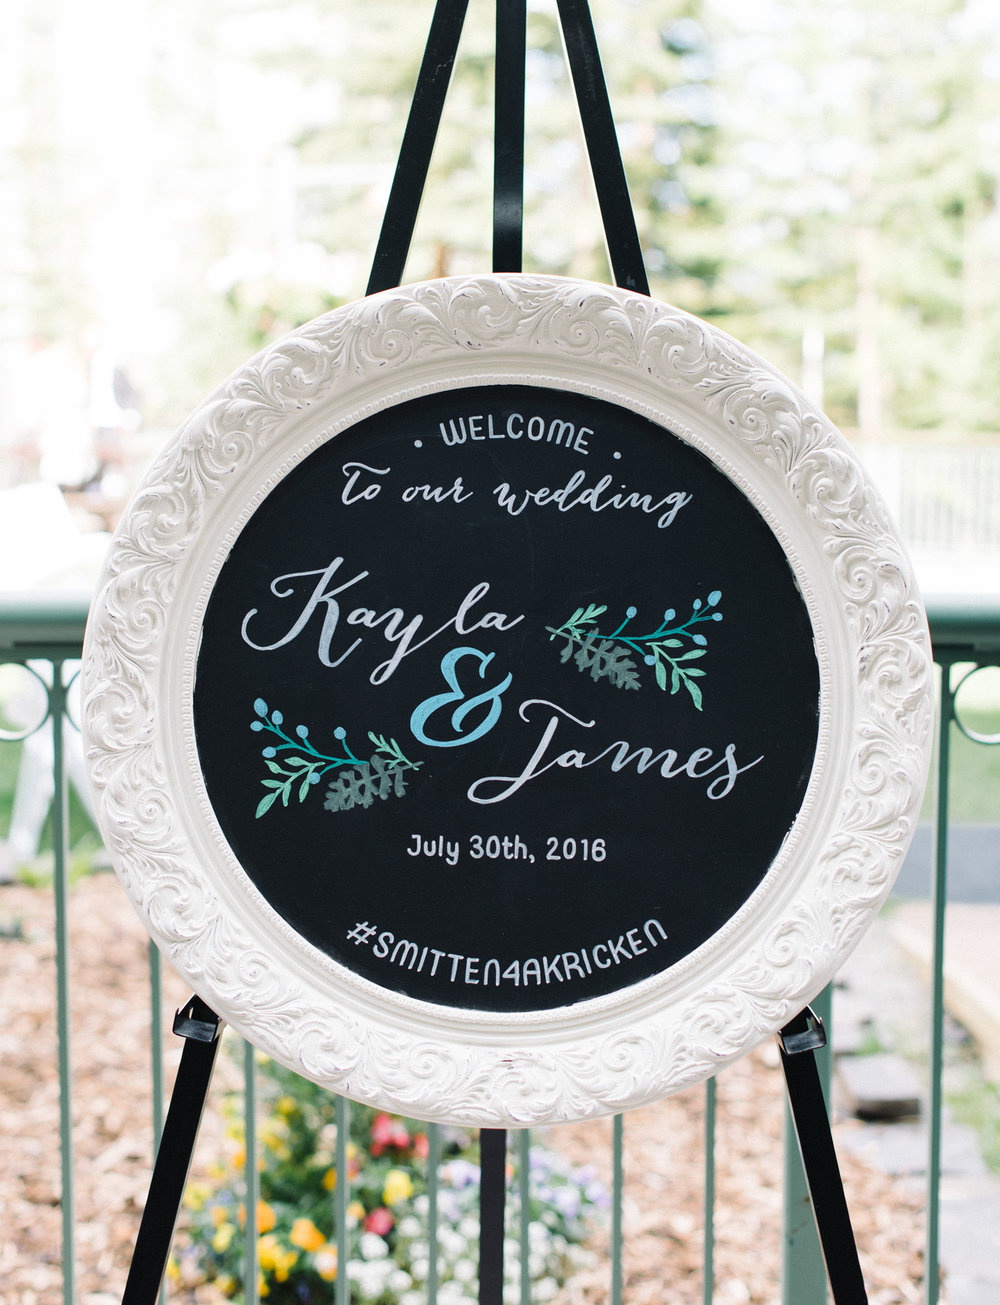 Here Kayla & James have included their names as well as hashtag on their wedding welcome sign. Photo courtesy of Sarah Vaughan